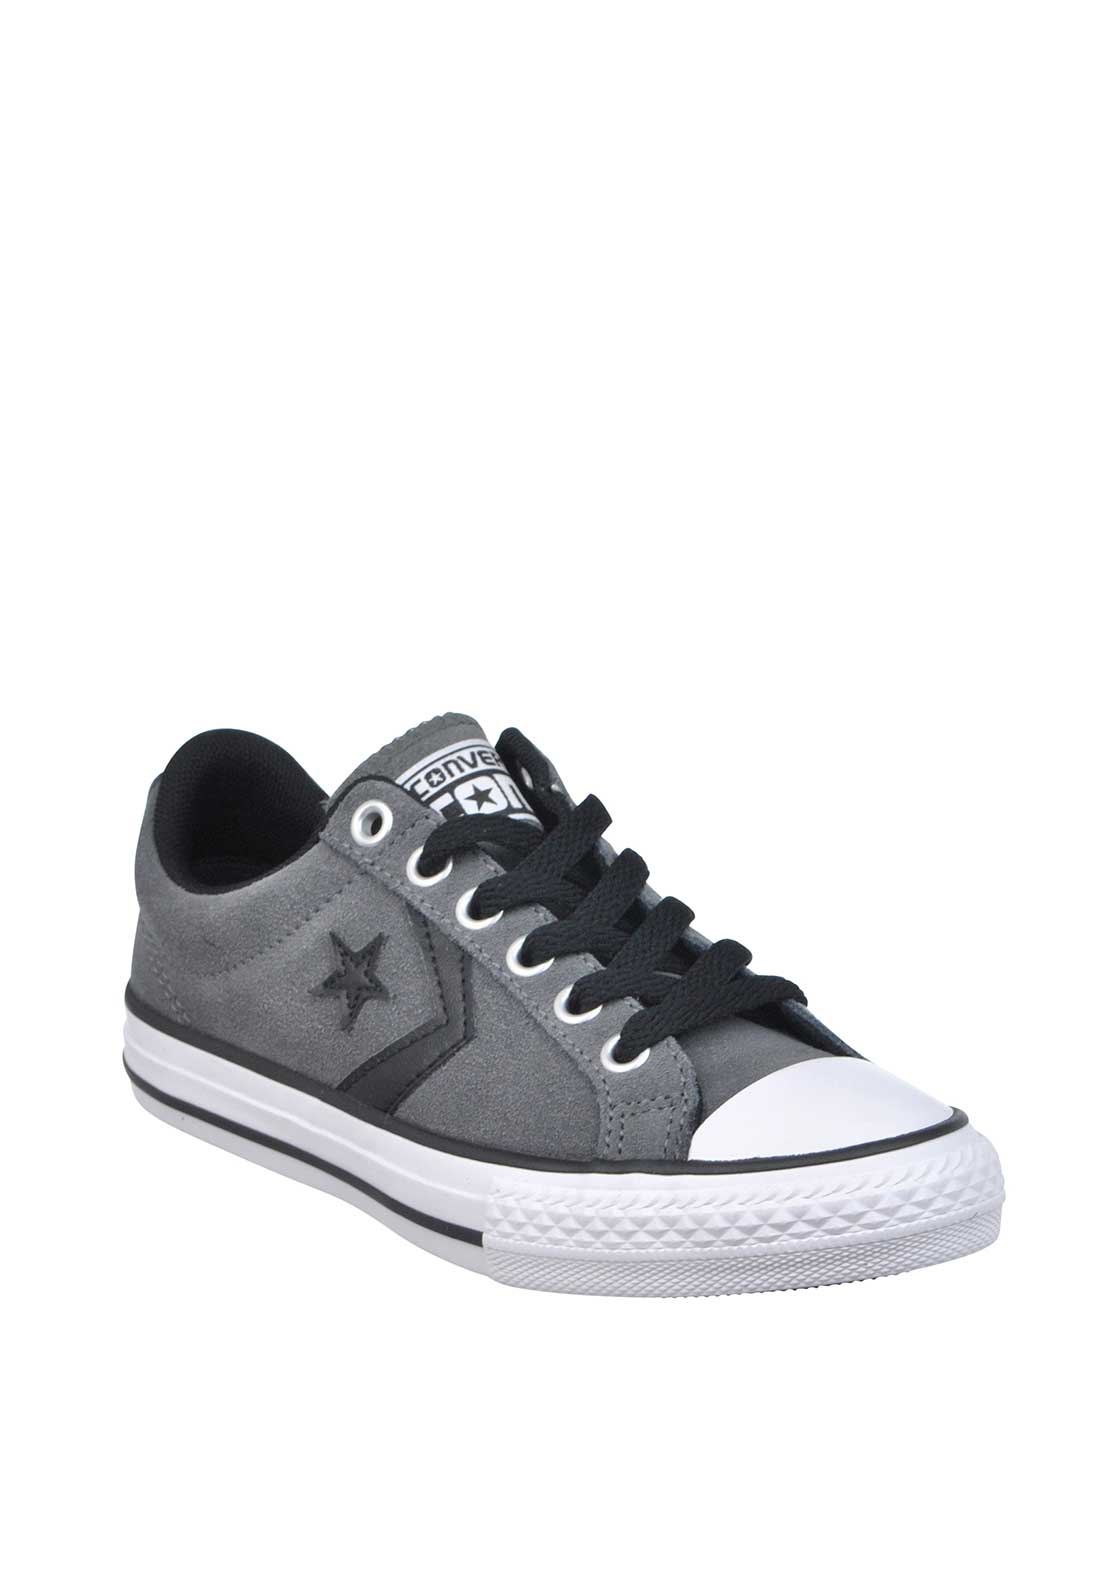 Converse Kids Cons Star Player Suede Trainers, Grey